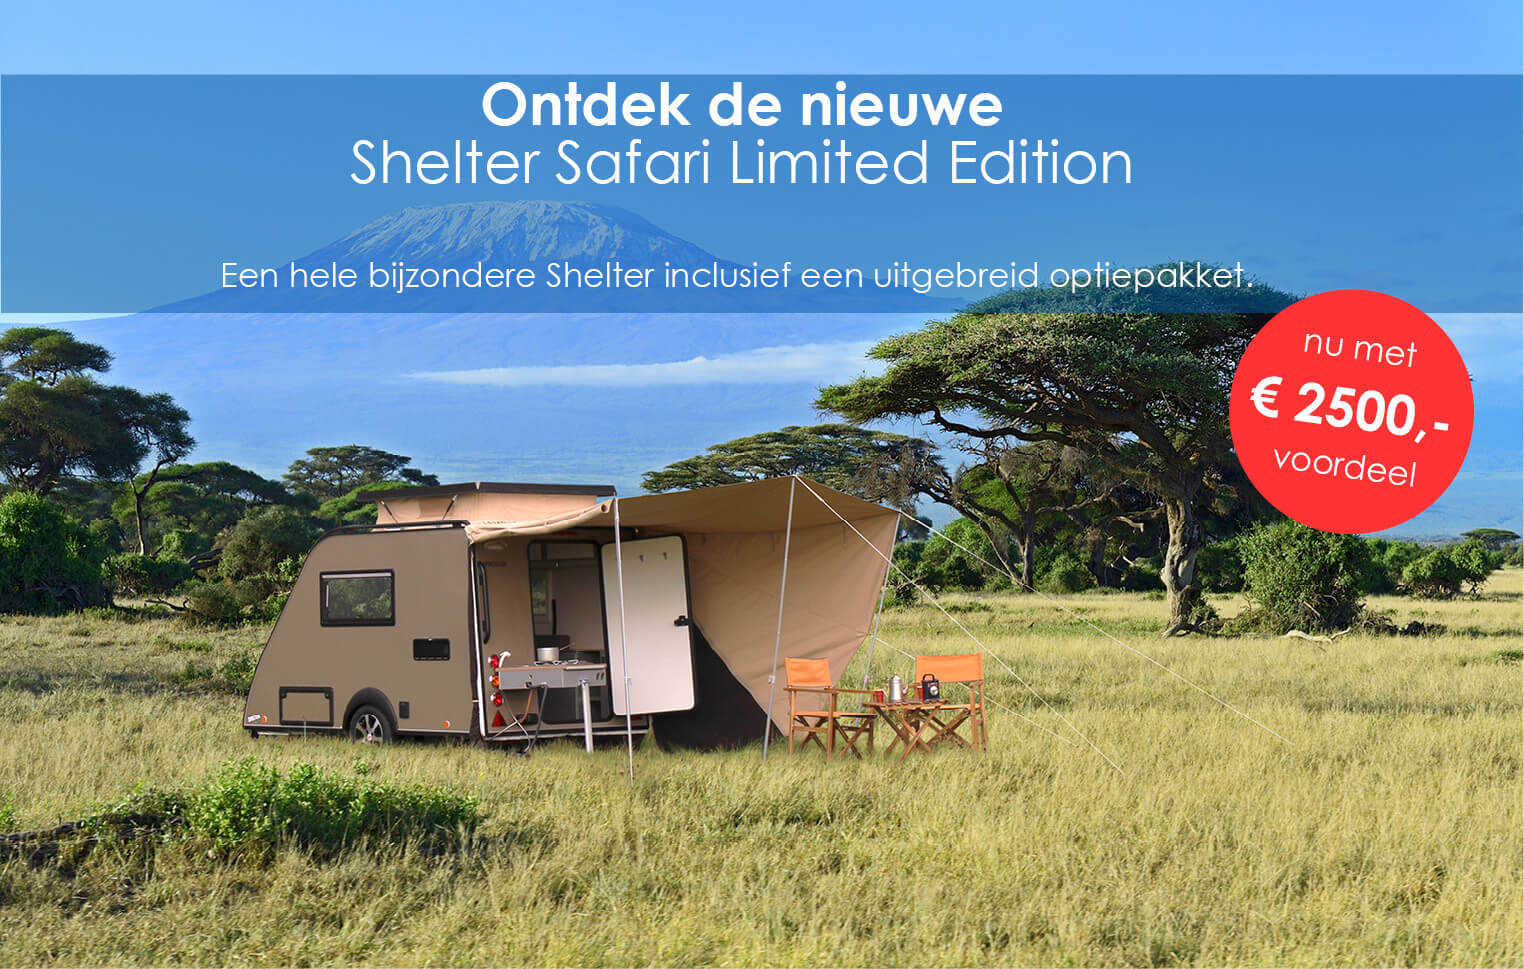 Shelter-Safari-limited